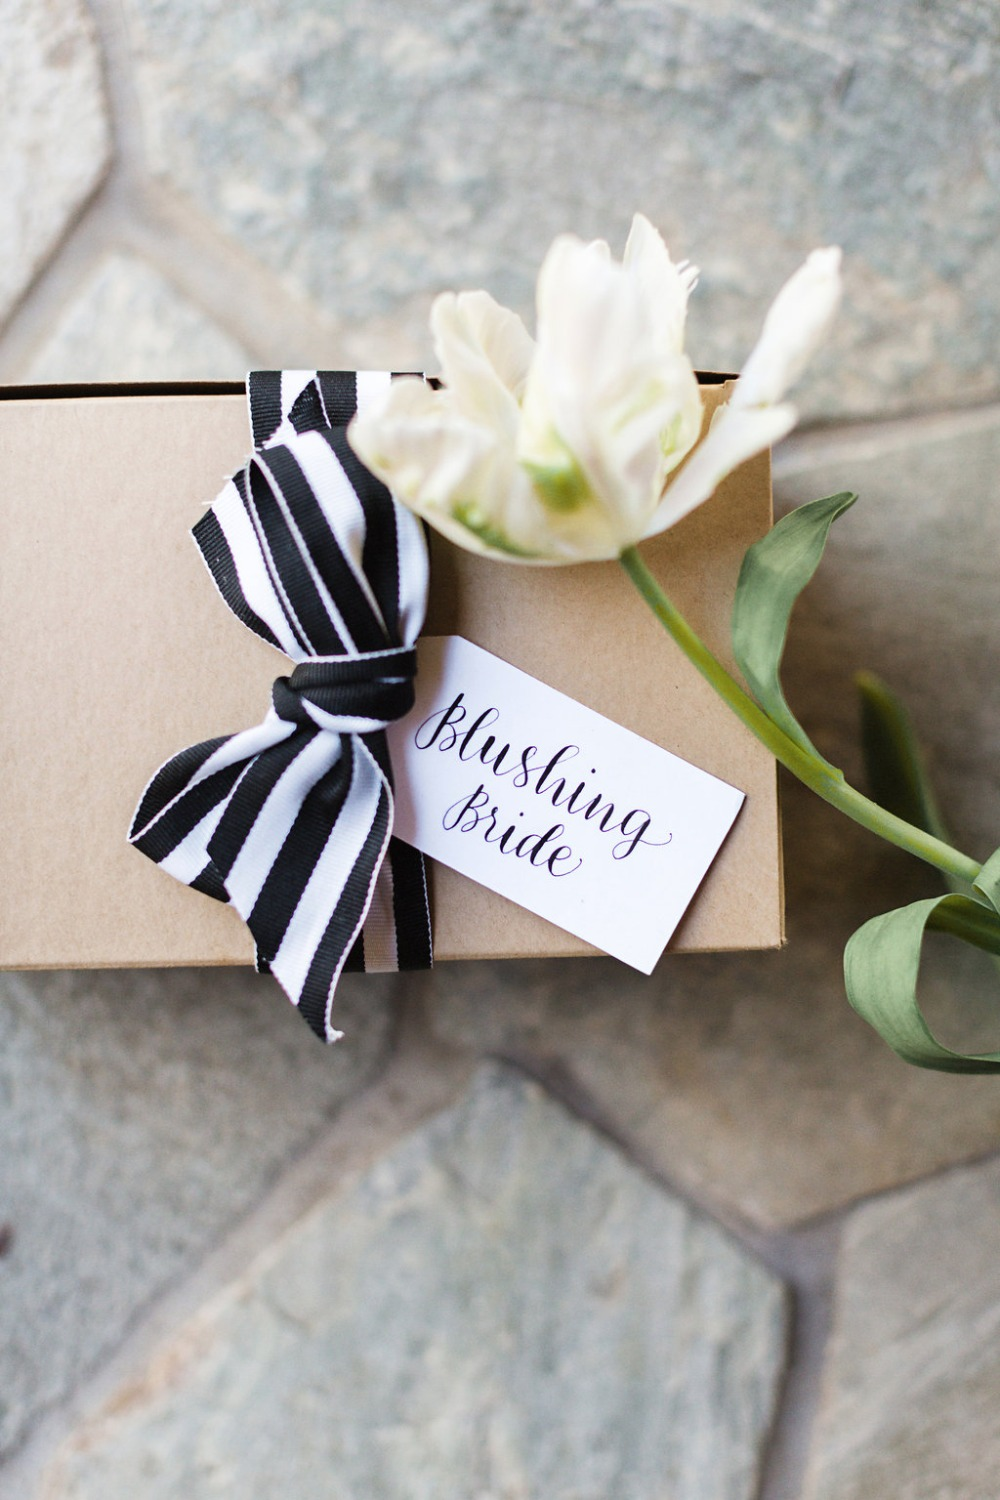 Bride gift from groom